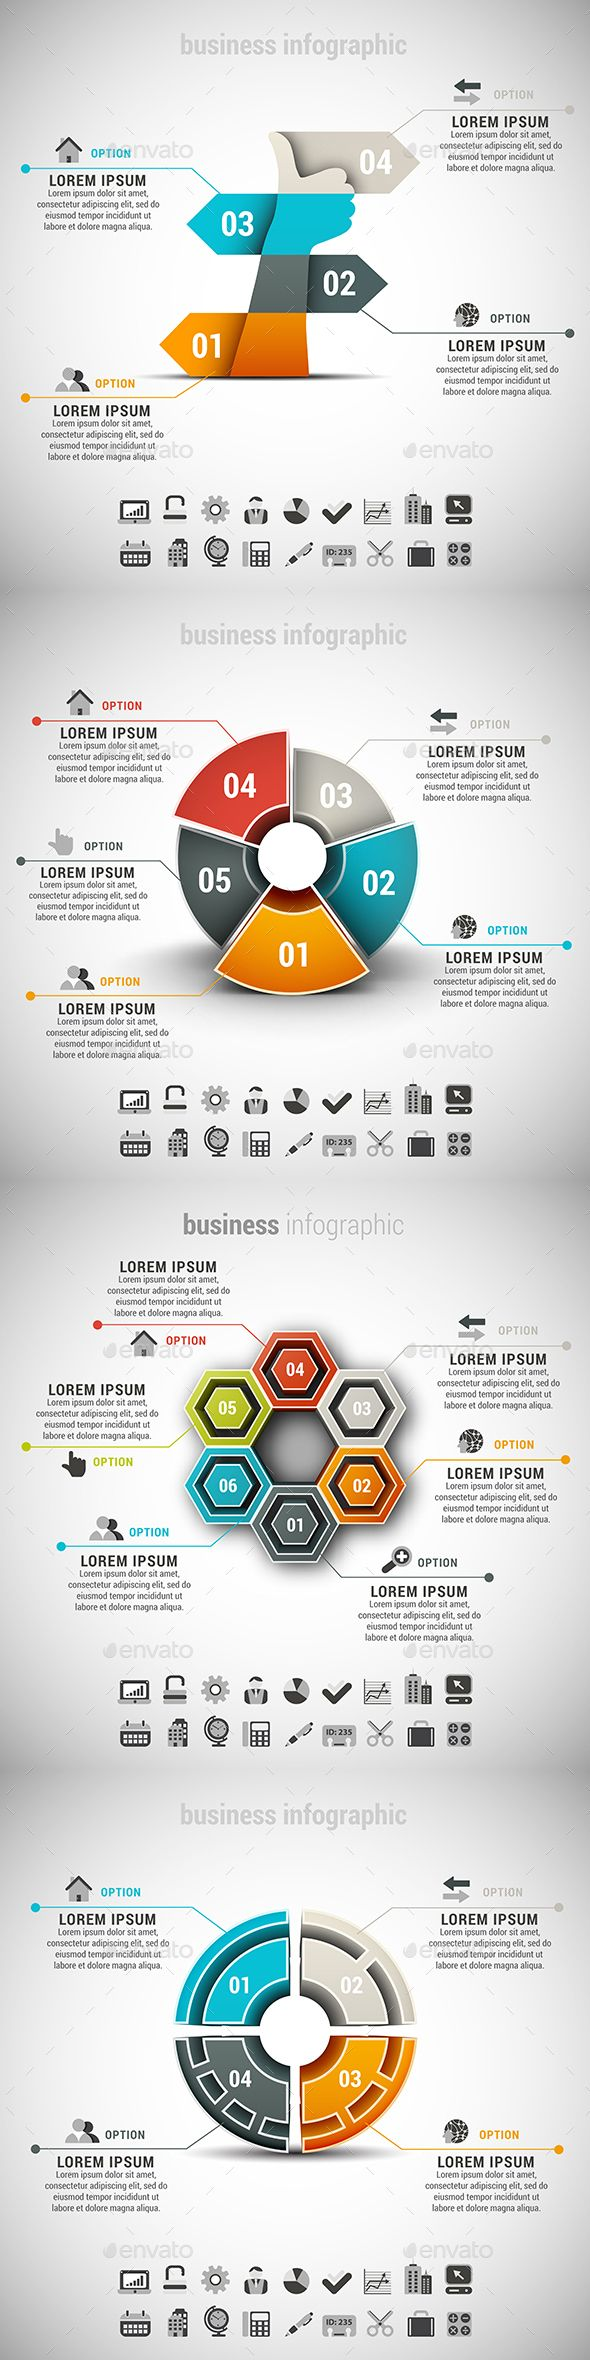 4 in 1 Business Infographics Template Bundle. Download here: http://graphicriver.net/item/4-in-1-business-infographics-bundle/14279363?ref=ksioks